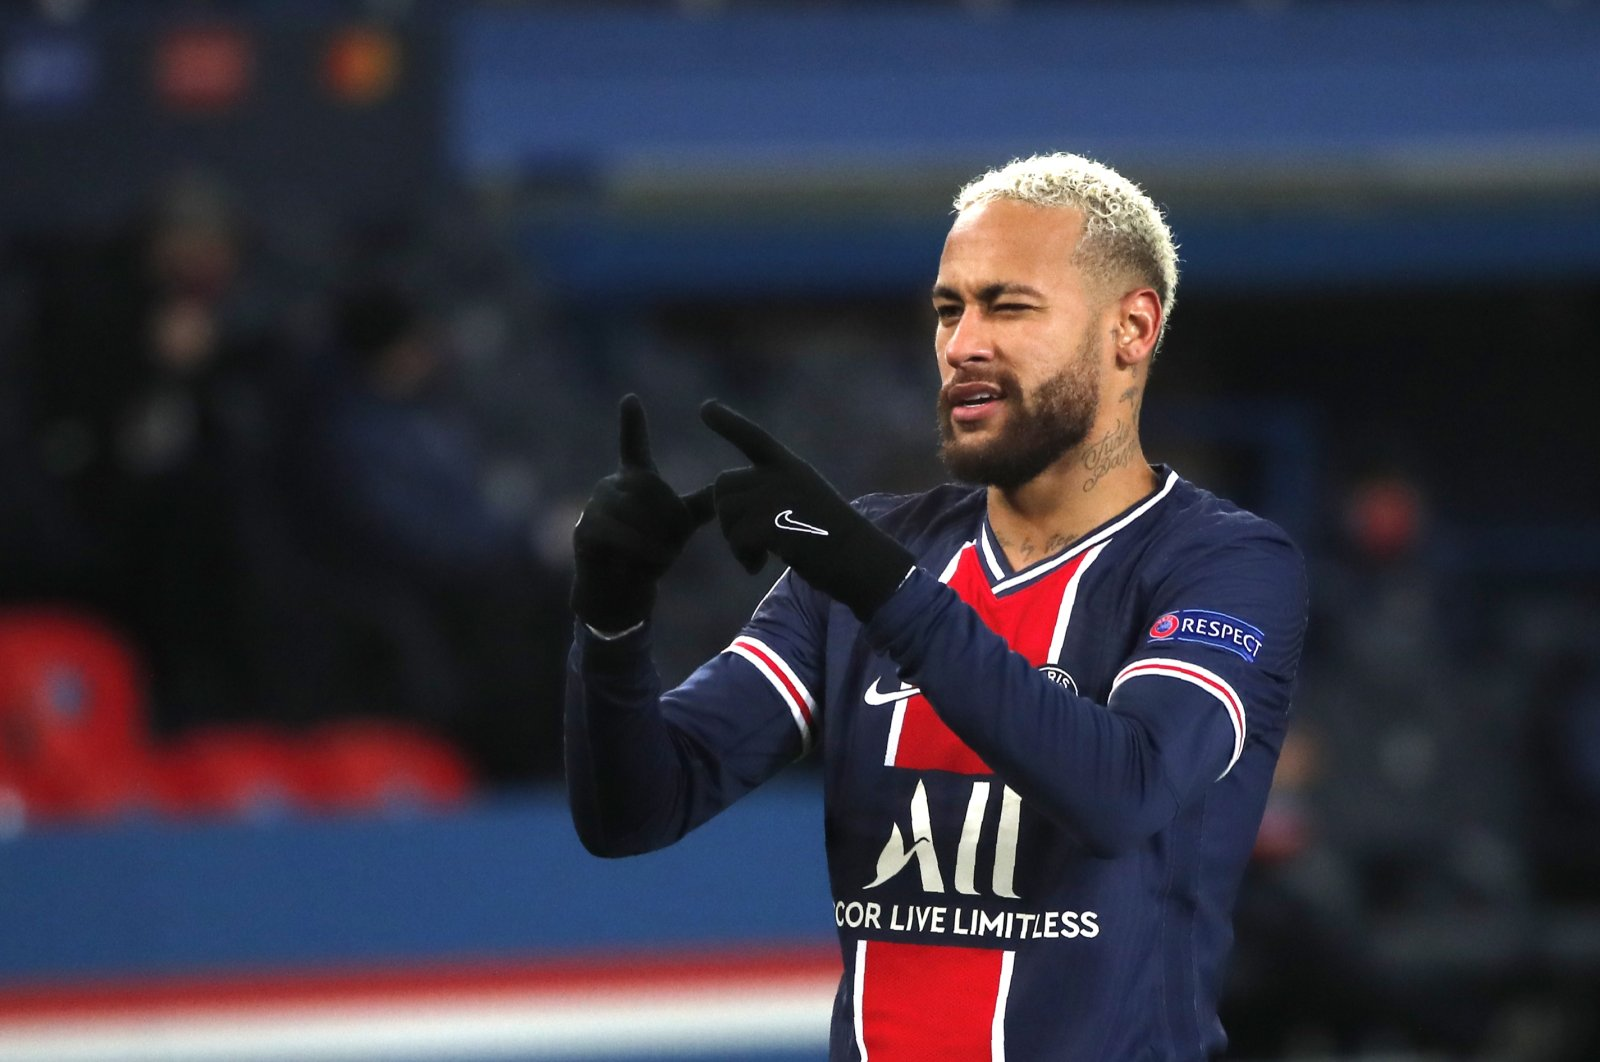 Paris Saint-Germain's Neymar celebrates a goal during a Champions League match against Istanbul Başakşehir at the Parc des Princes stadium, in Paris, France, Dec. 9, 2020. (AP Photo)